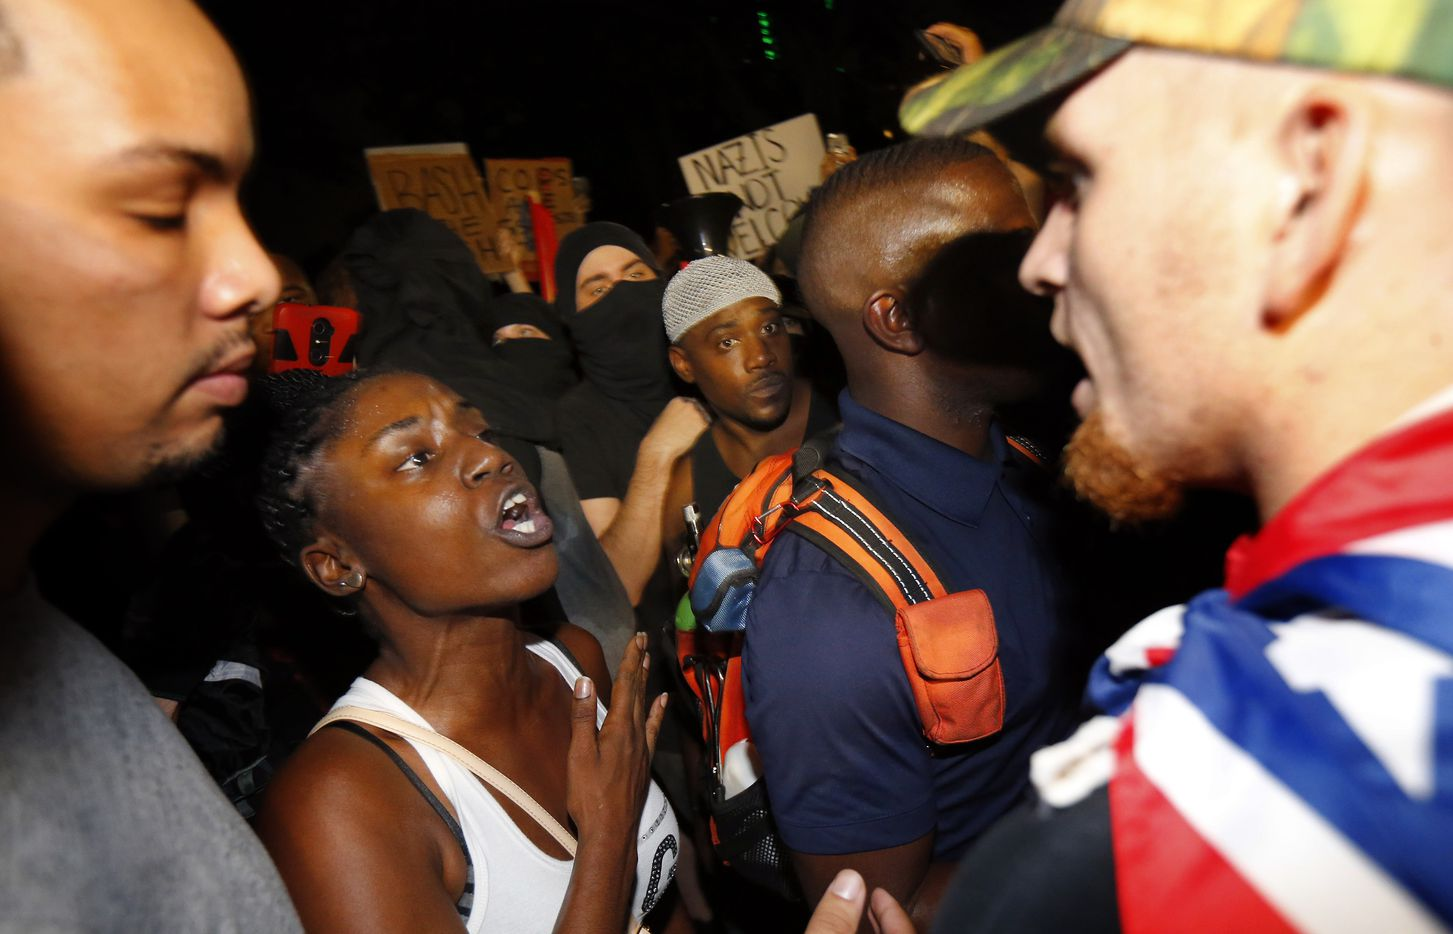 Protestors clash in Pioneer Park following the March Against White Supremacy.